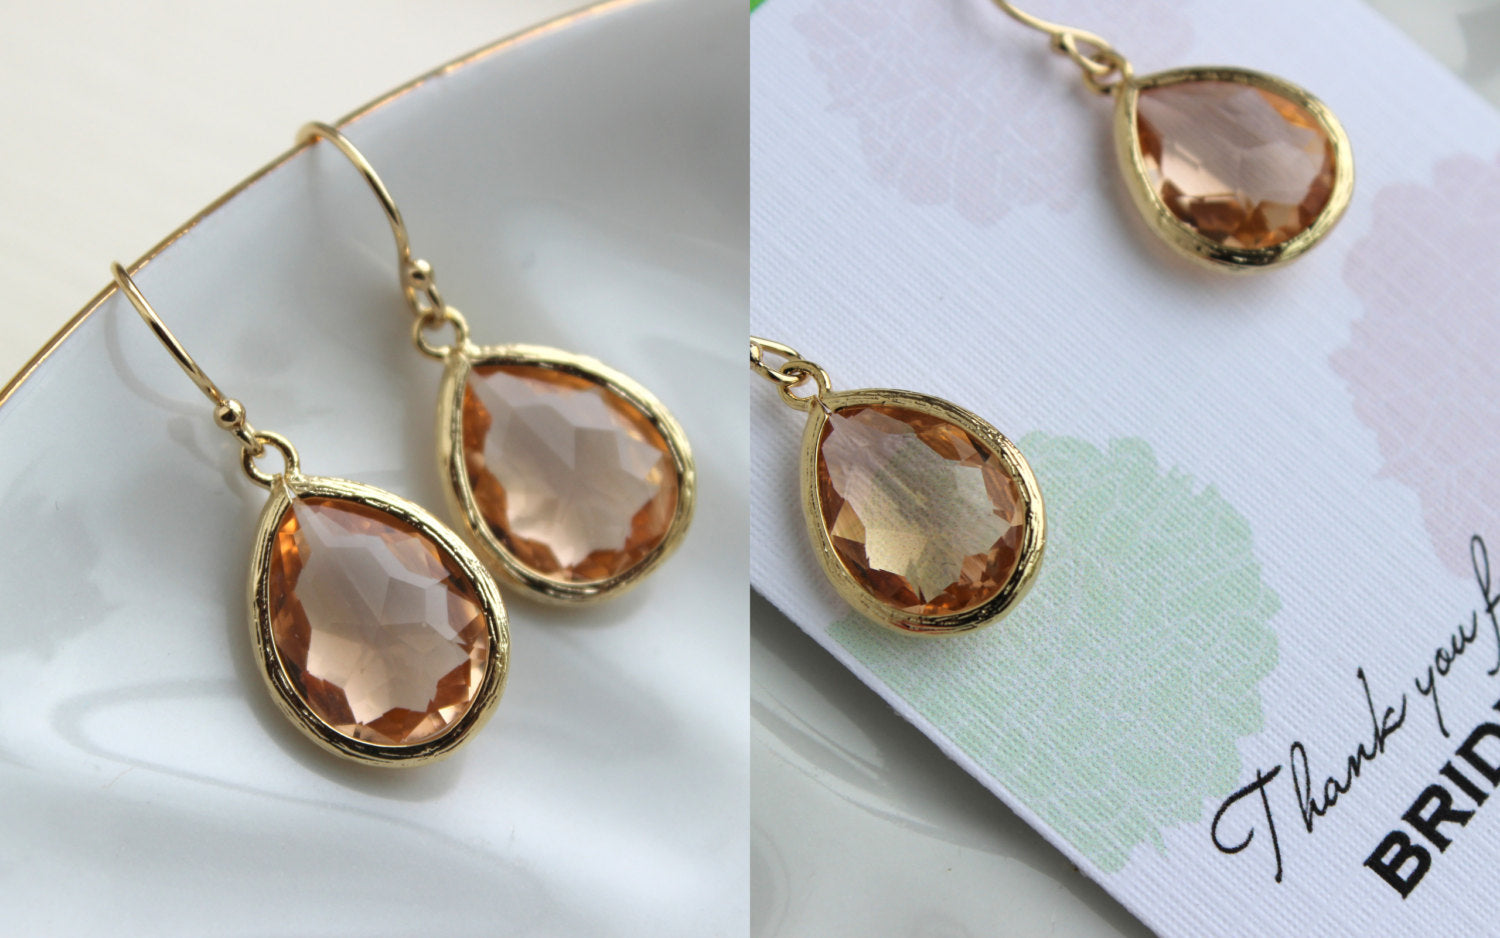 Gold Blush Earrings Champagne Peach Pink Teardrop Wedding Jewelry Blush Bridesmaid Earrings Peach Bridal Jewelry Personalized Gift Under 25